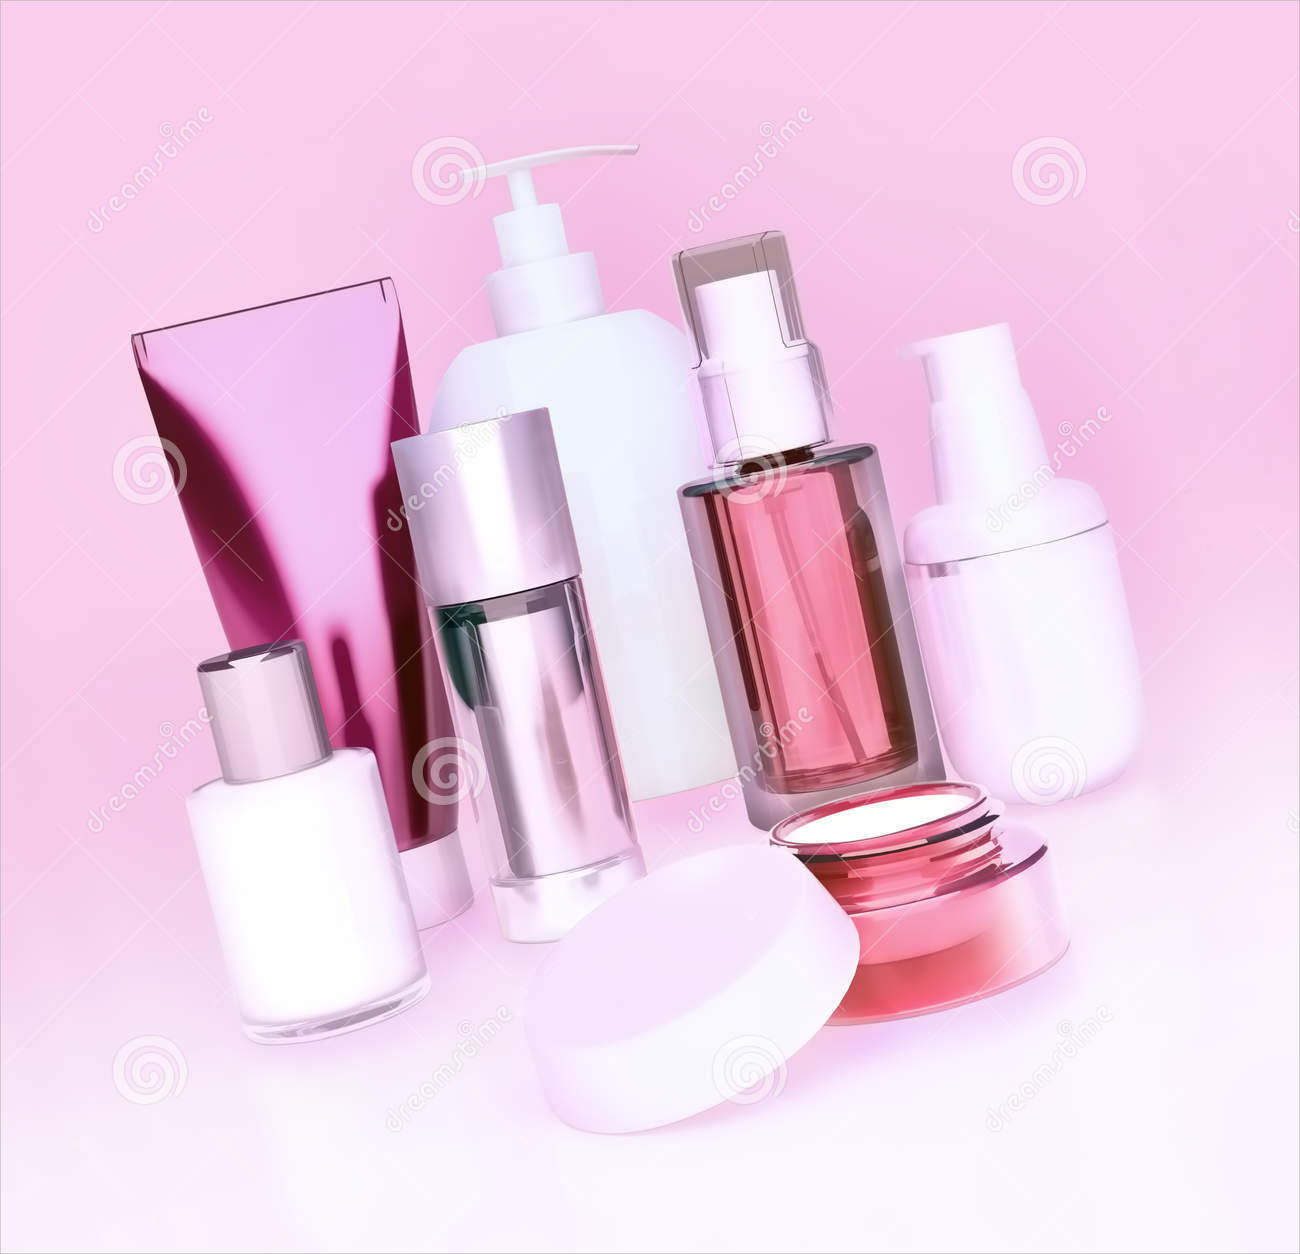 daily beauty care cosmetics products